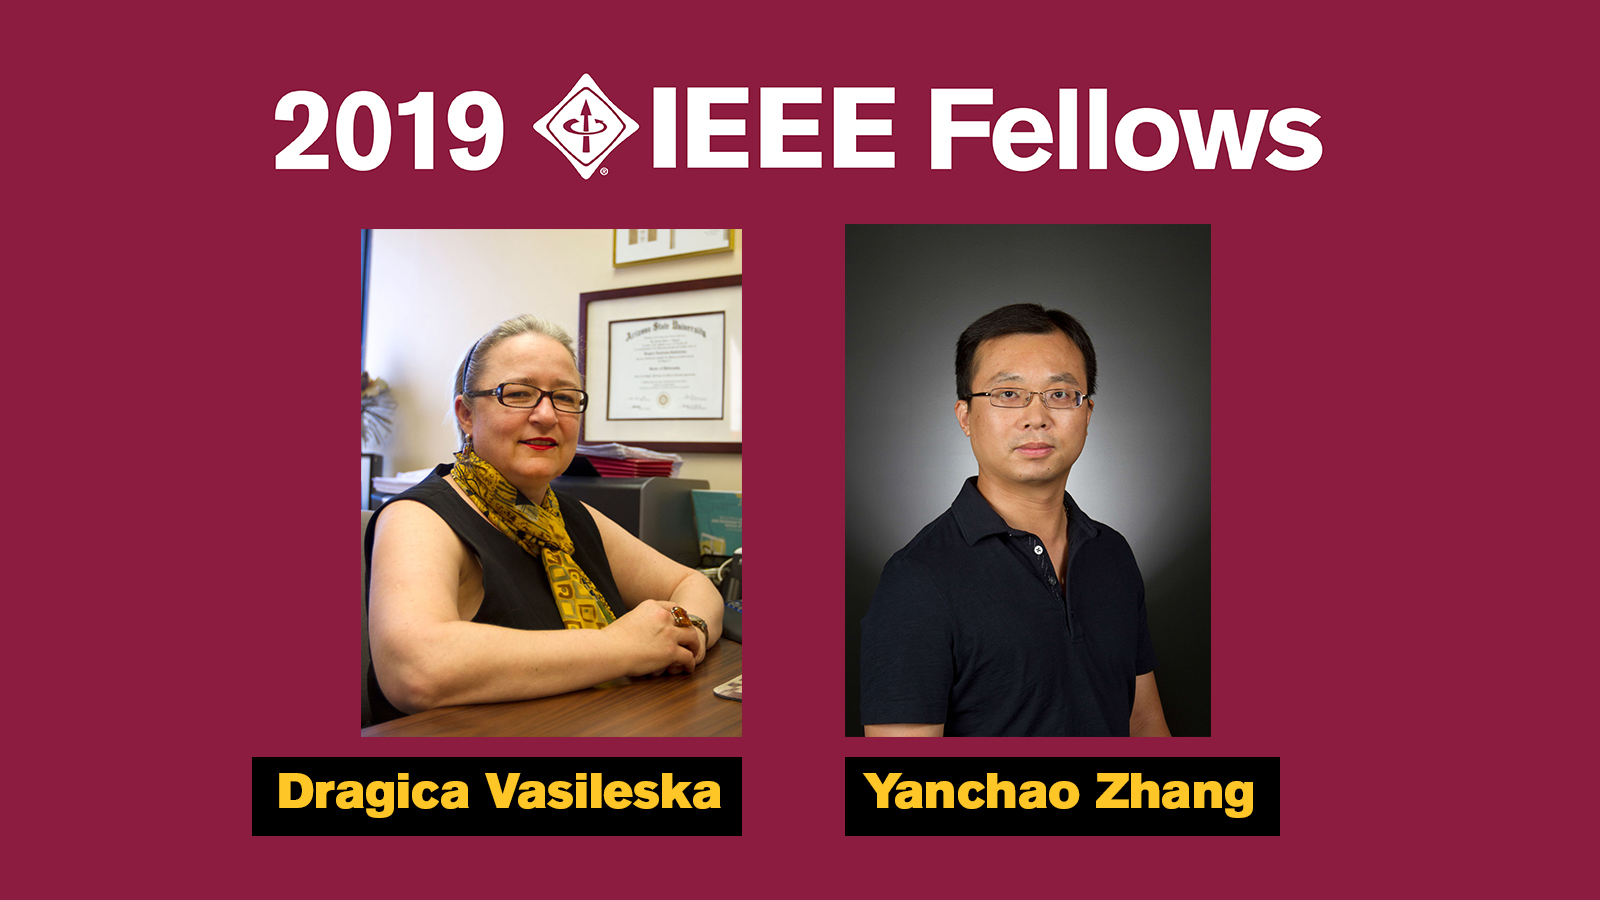 """Portraits of Dragica Vasileska and Yanchao Zhang with the words """"2019 IEEE Fellows"""""""